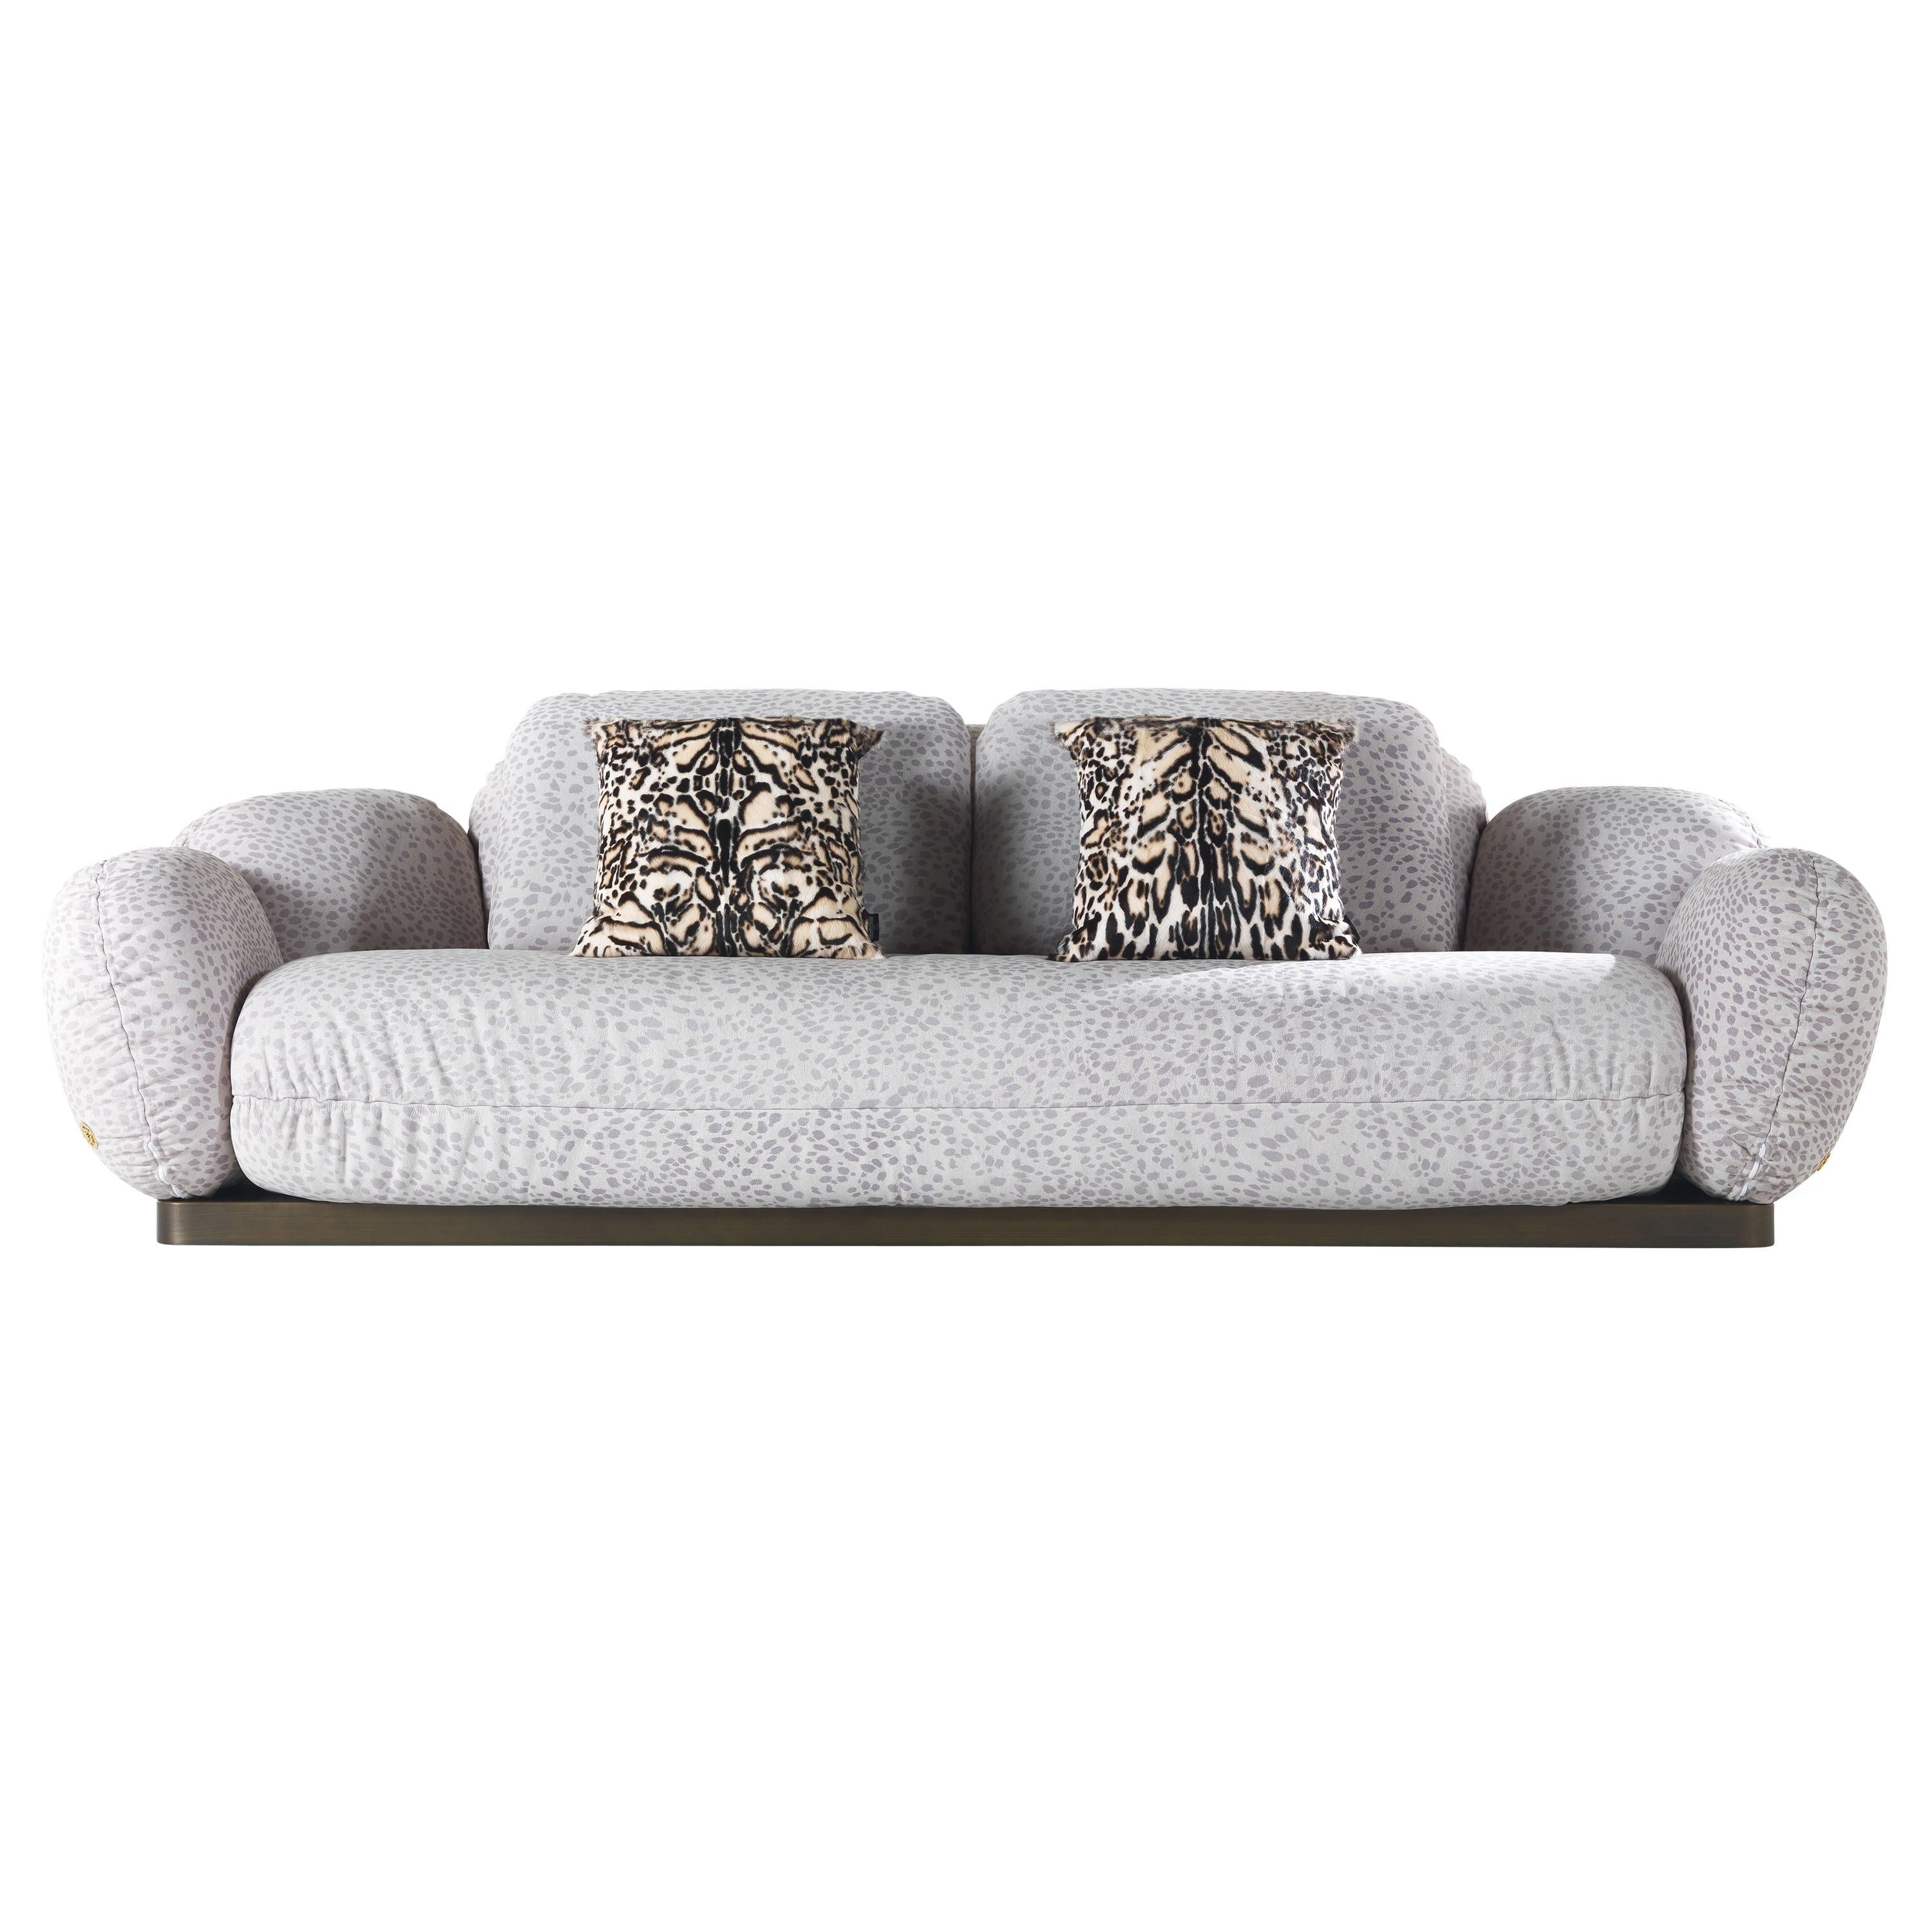 Tobago 3-Seater Sofa in Leather by Roberto Cavalli Home Interiors